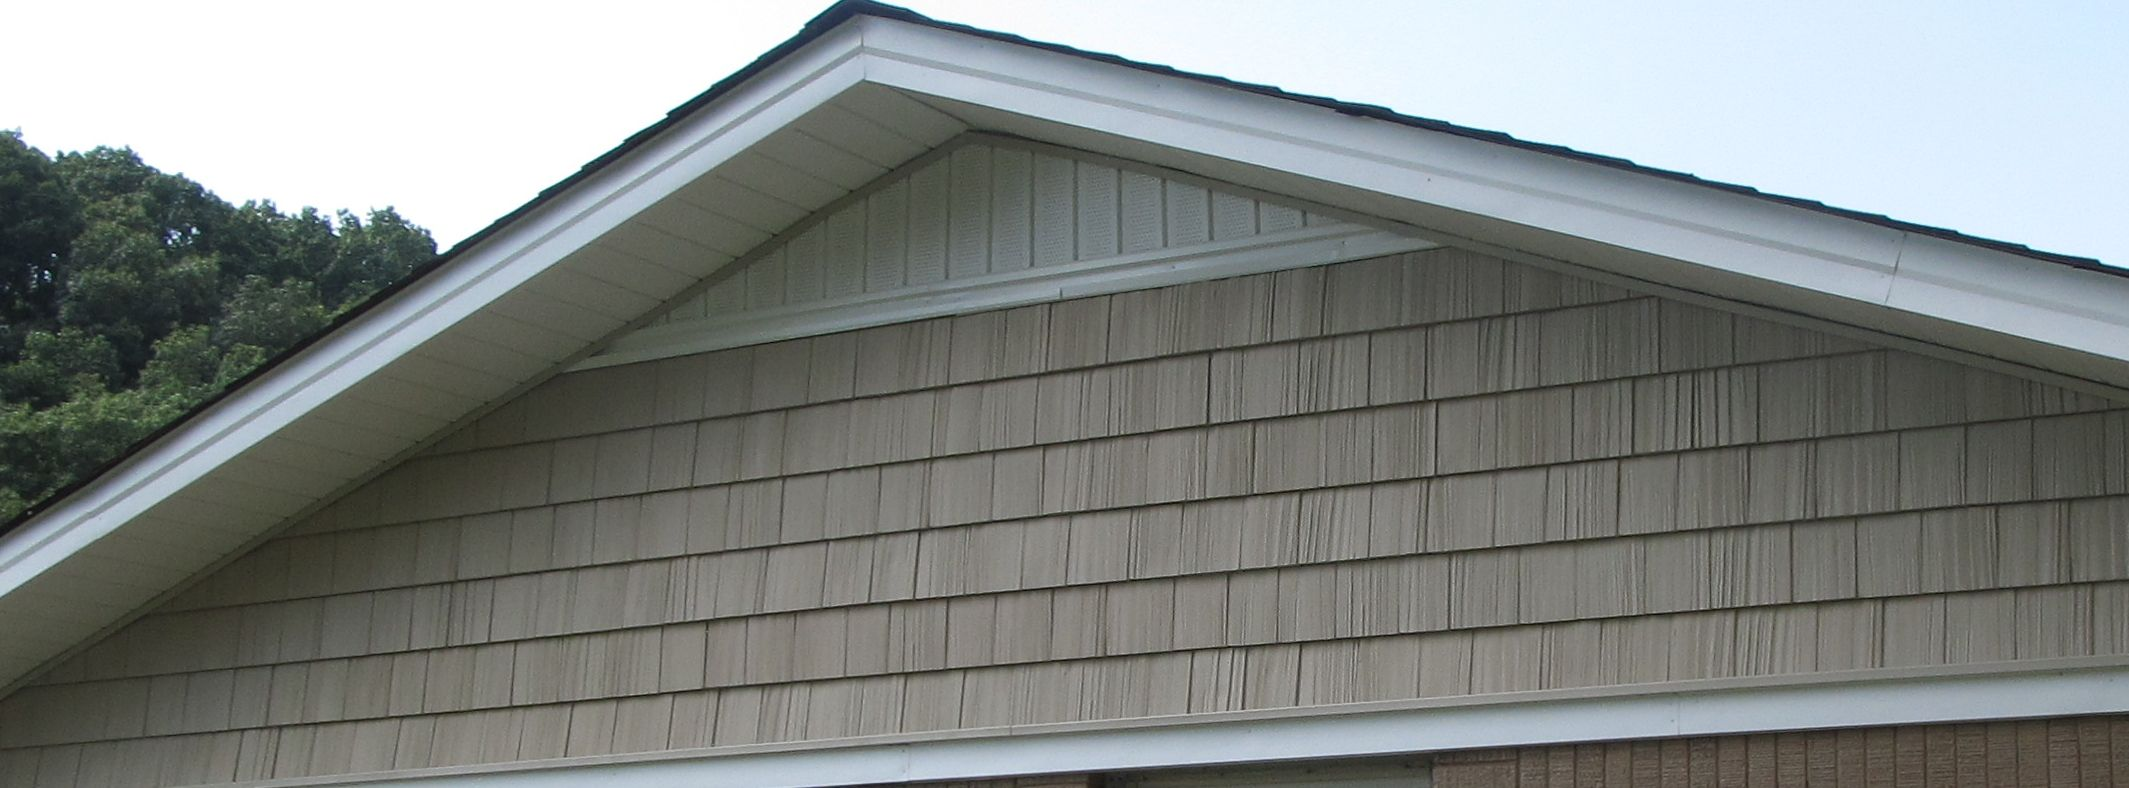 Vinyl Shake Siding On A Gable Vinyl Shake Siding Cottage Exterior Siding Options